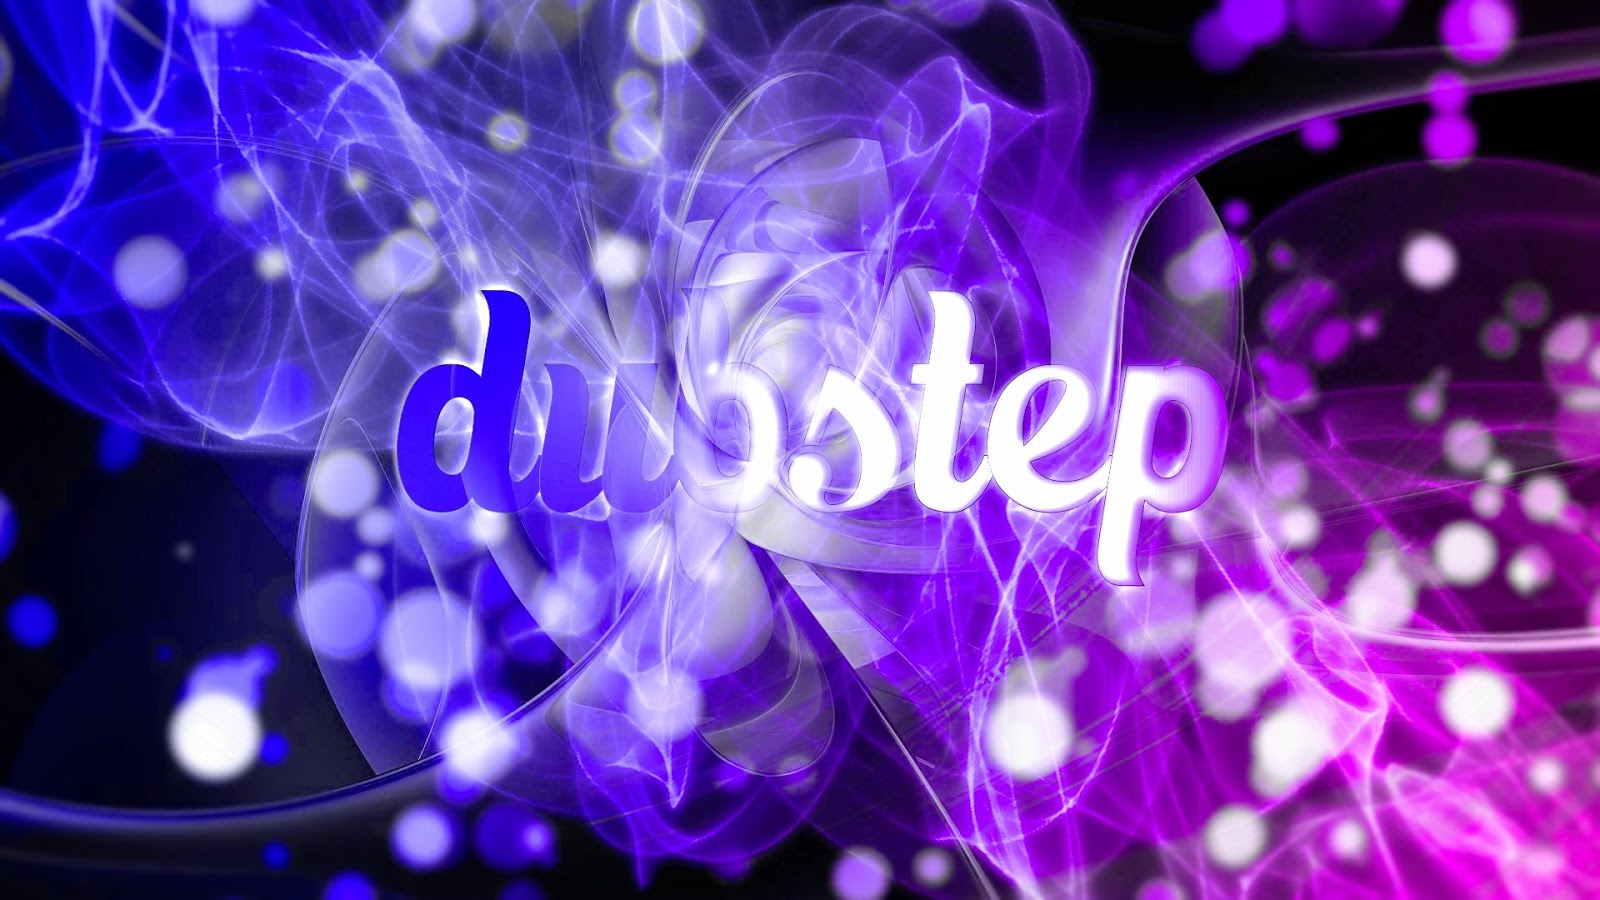 purple dubstep wallpaper by - photo #1